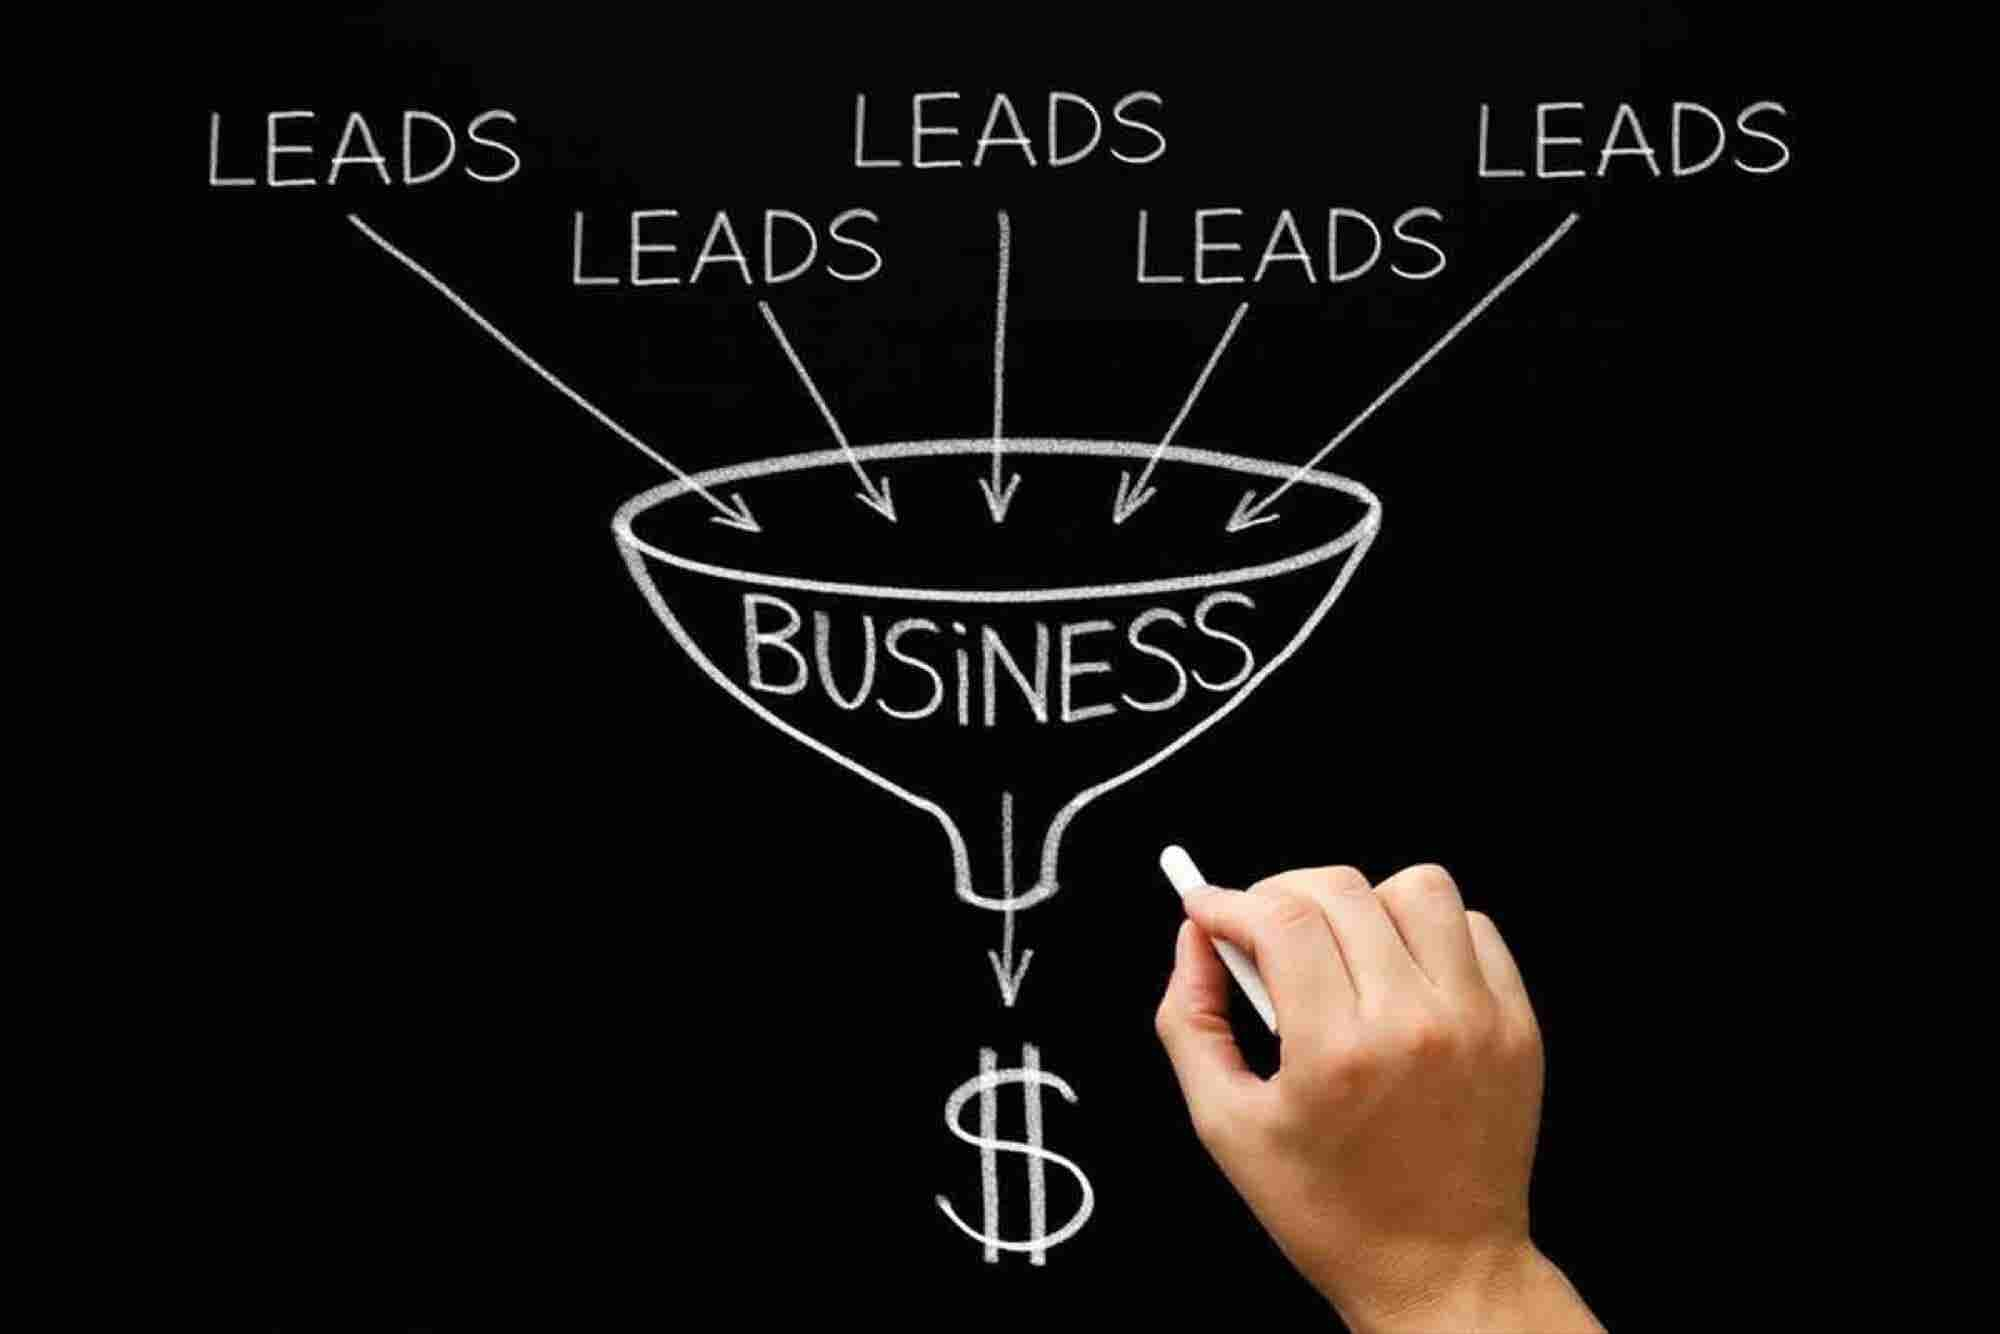 3 Proven Ways to Grow Your Business Without a Lot of Money